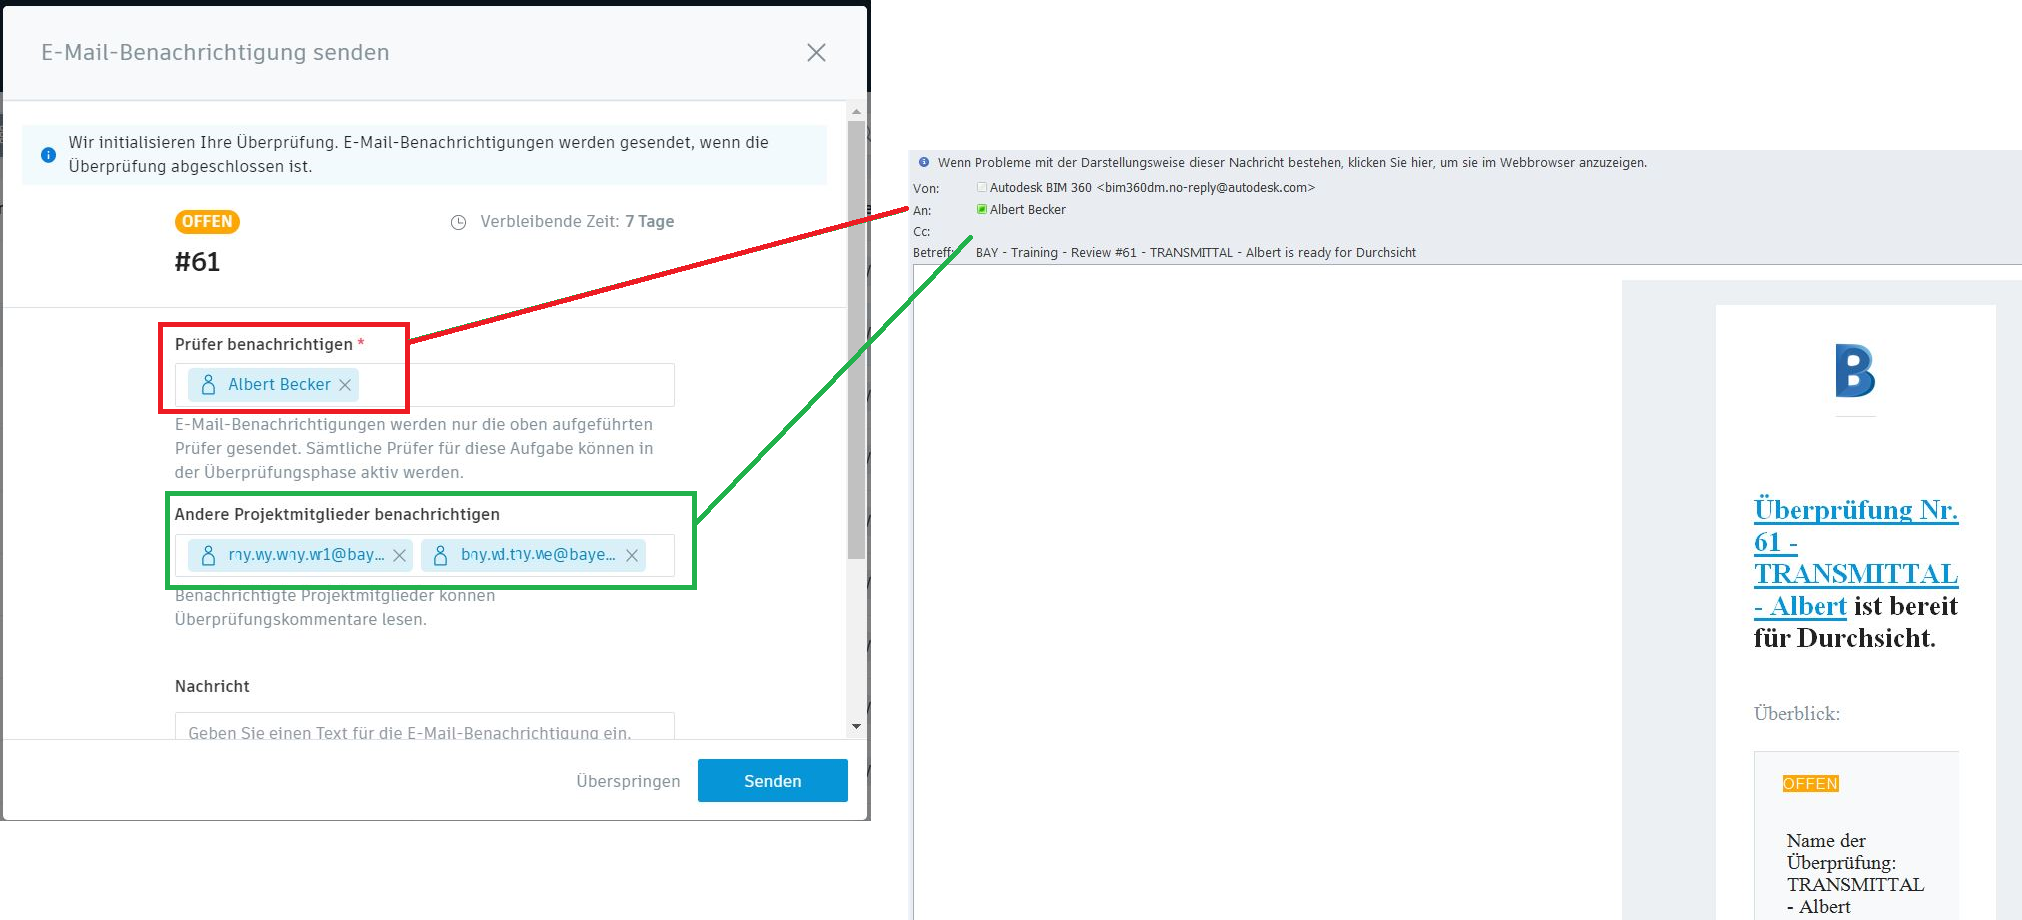 Email Notifications do not show all recipients - Autodesk